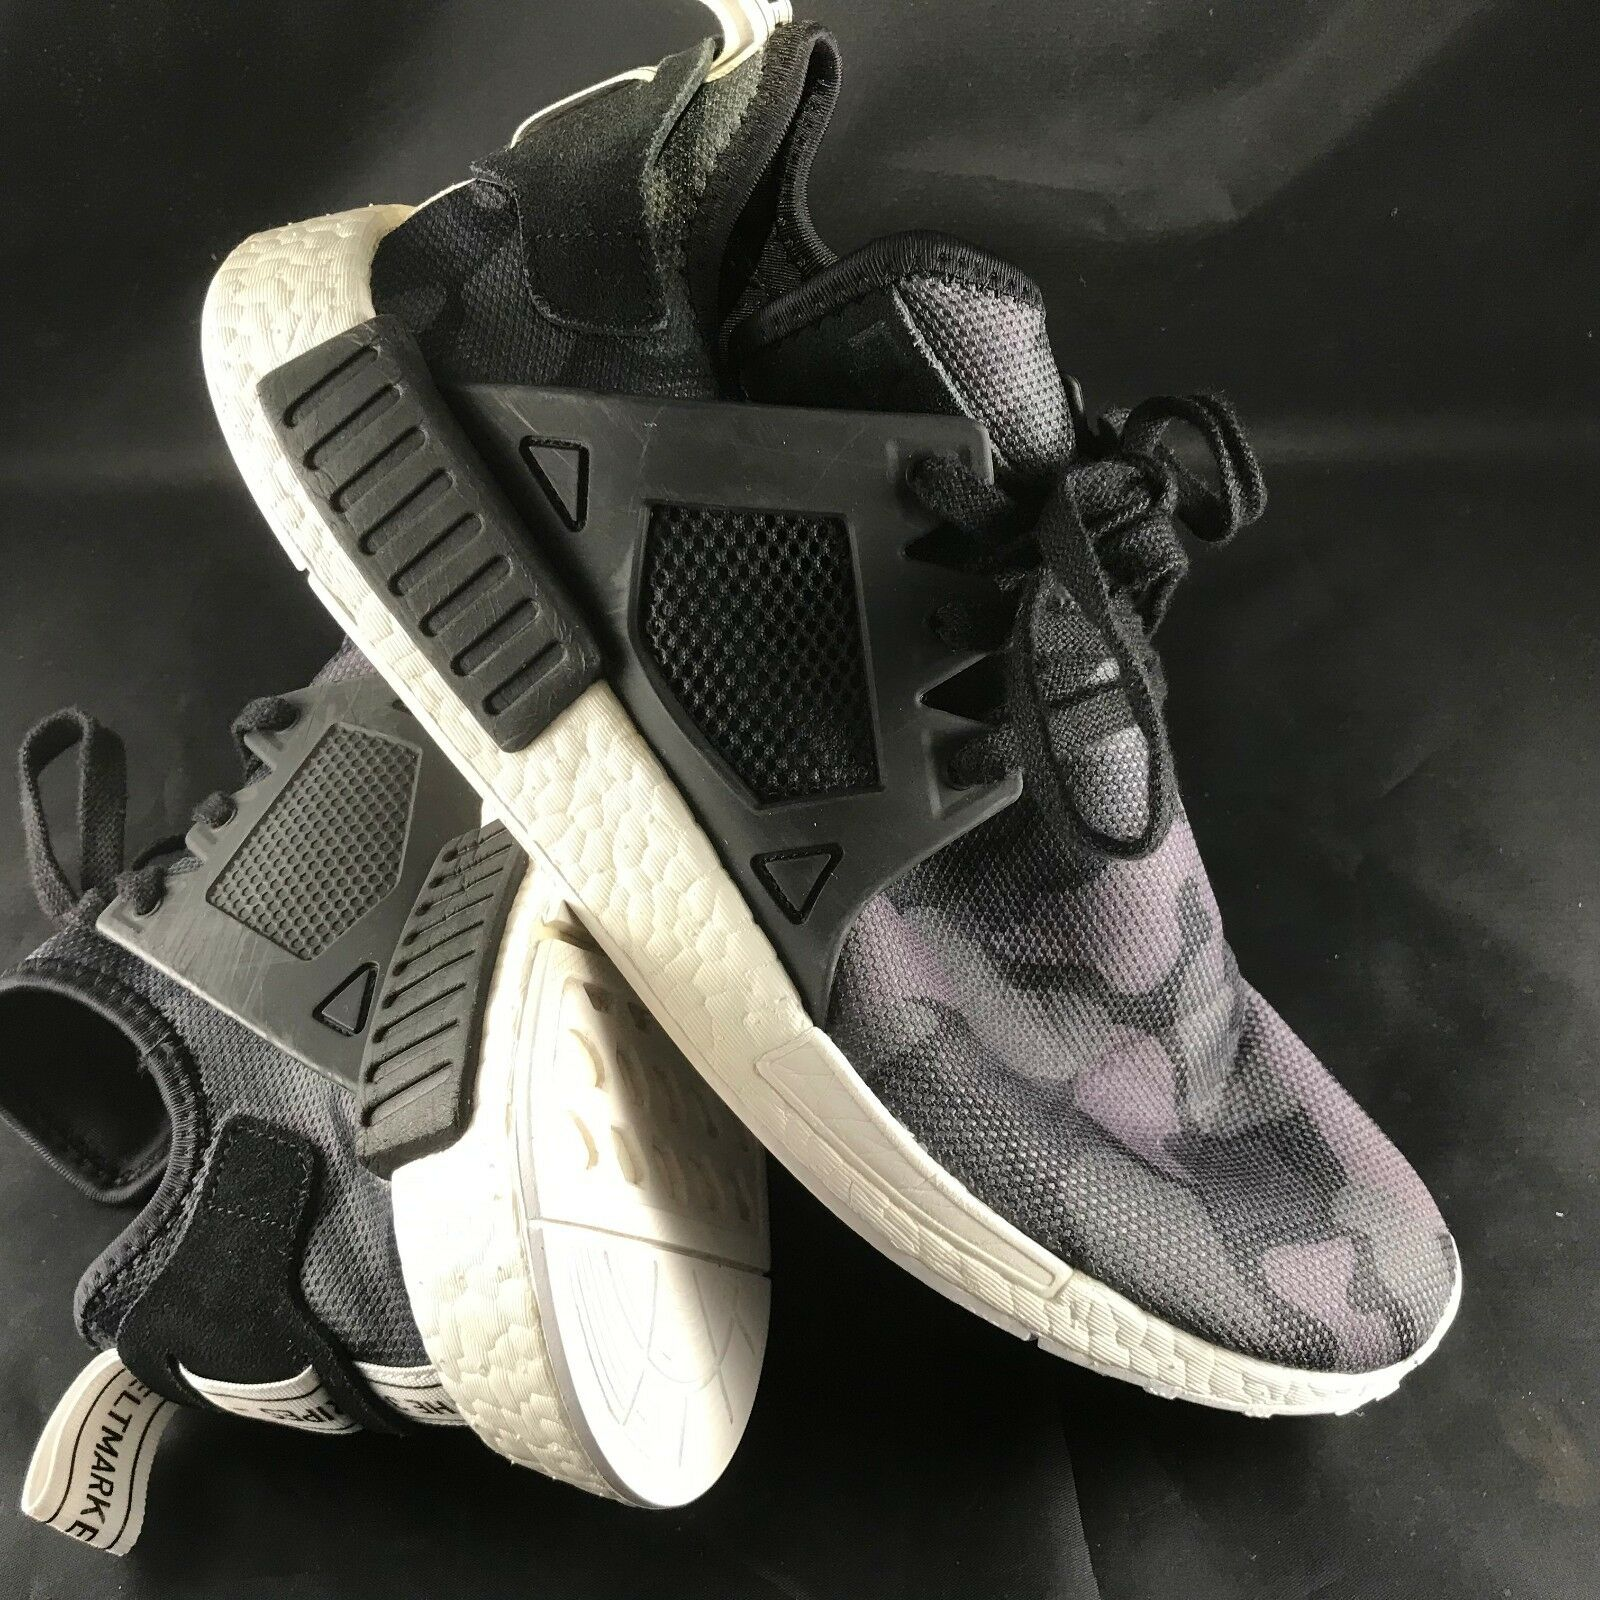 Mens Adidas NMD XR1 Runner Sneakers Black Camo BA7231 10.5 US, 44 2 3 EUR